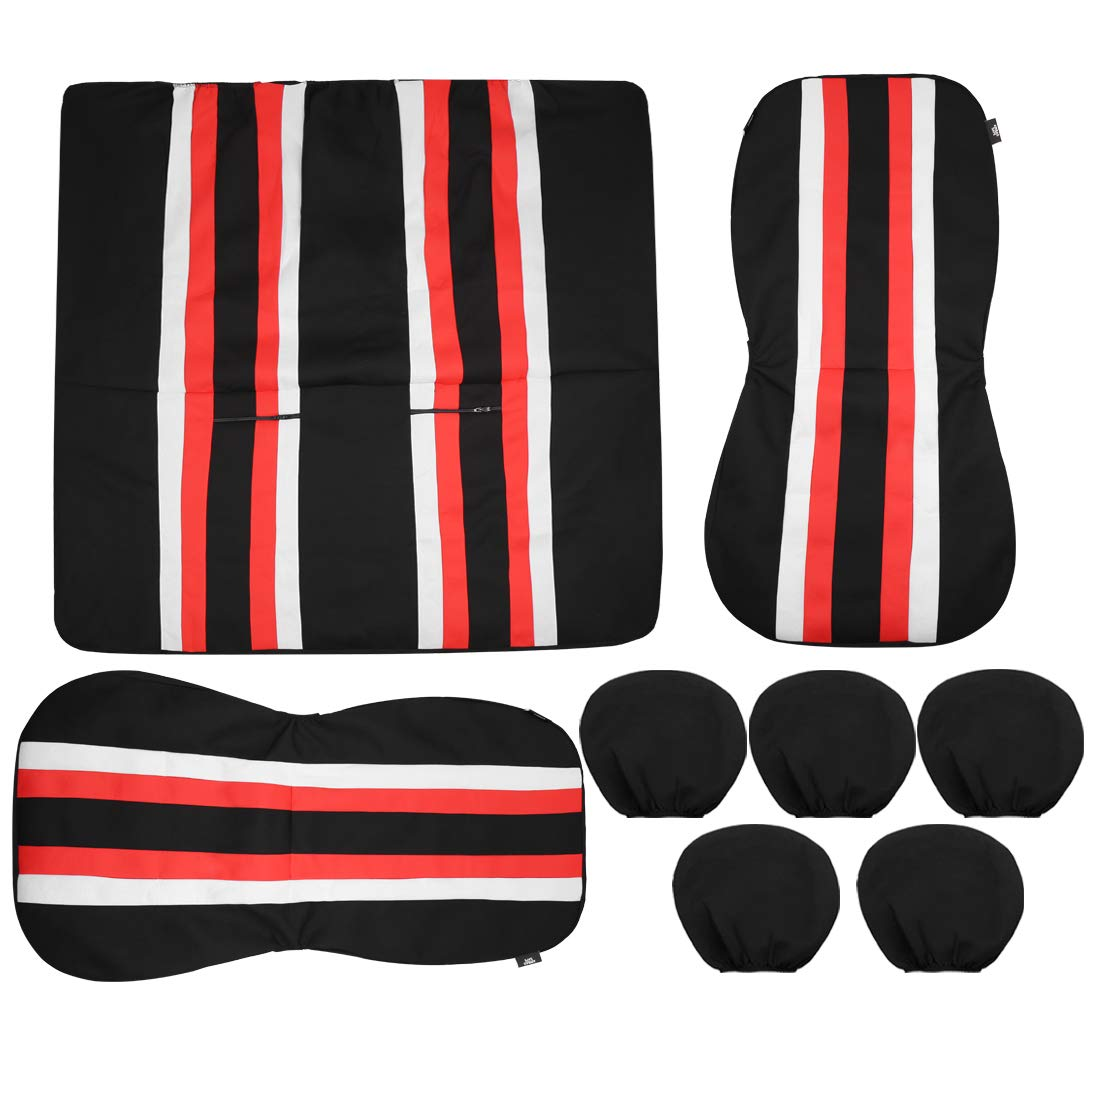 uxcell Universal Front Back Seat Cover Cushion Mat Protector for Car SUV Truck Black Red White Polyester Mesh 8pcs